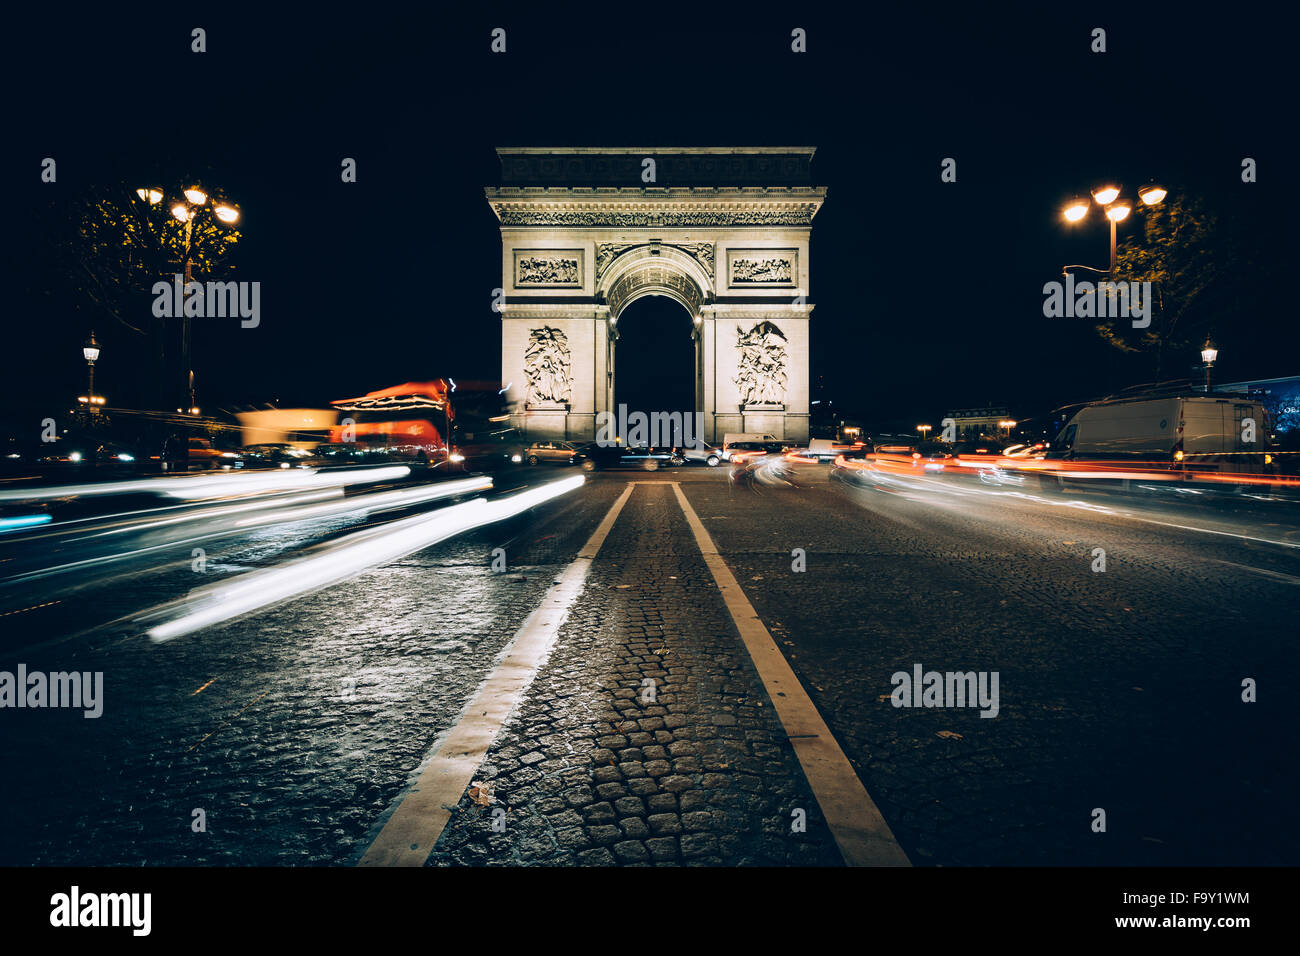 Traffic on Avenue des Champs-Élysées and the Arc de Triomphe at night in Paris, France. Stock Photo